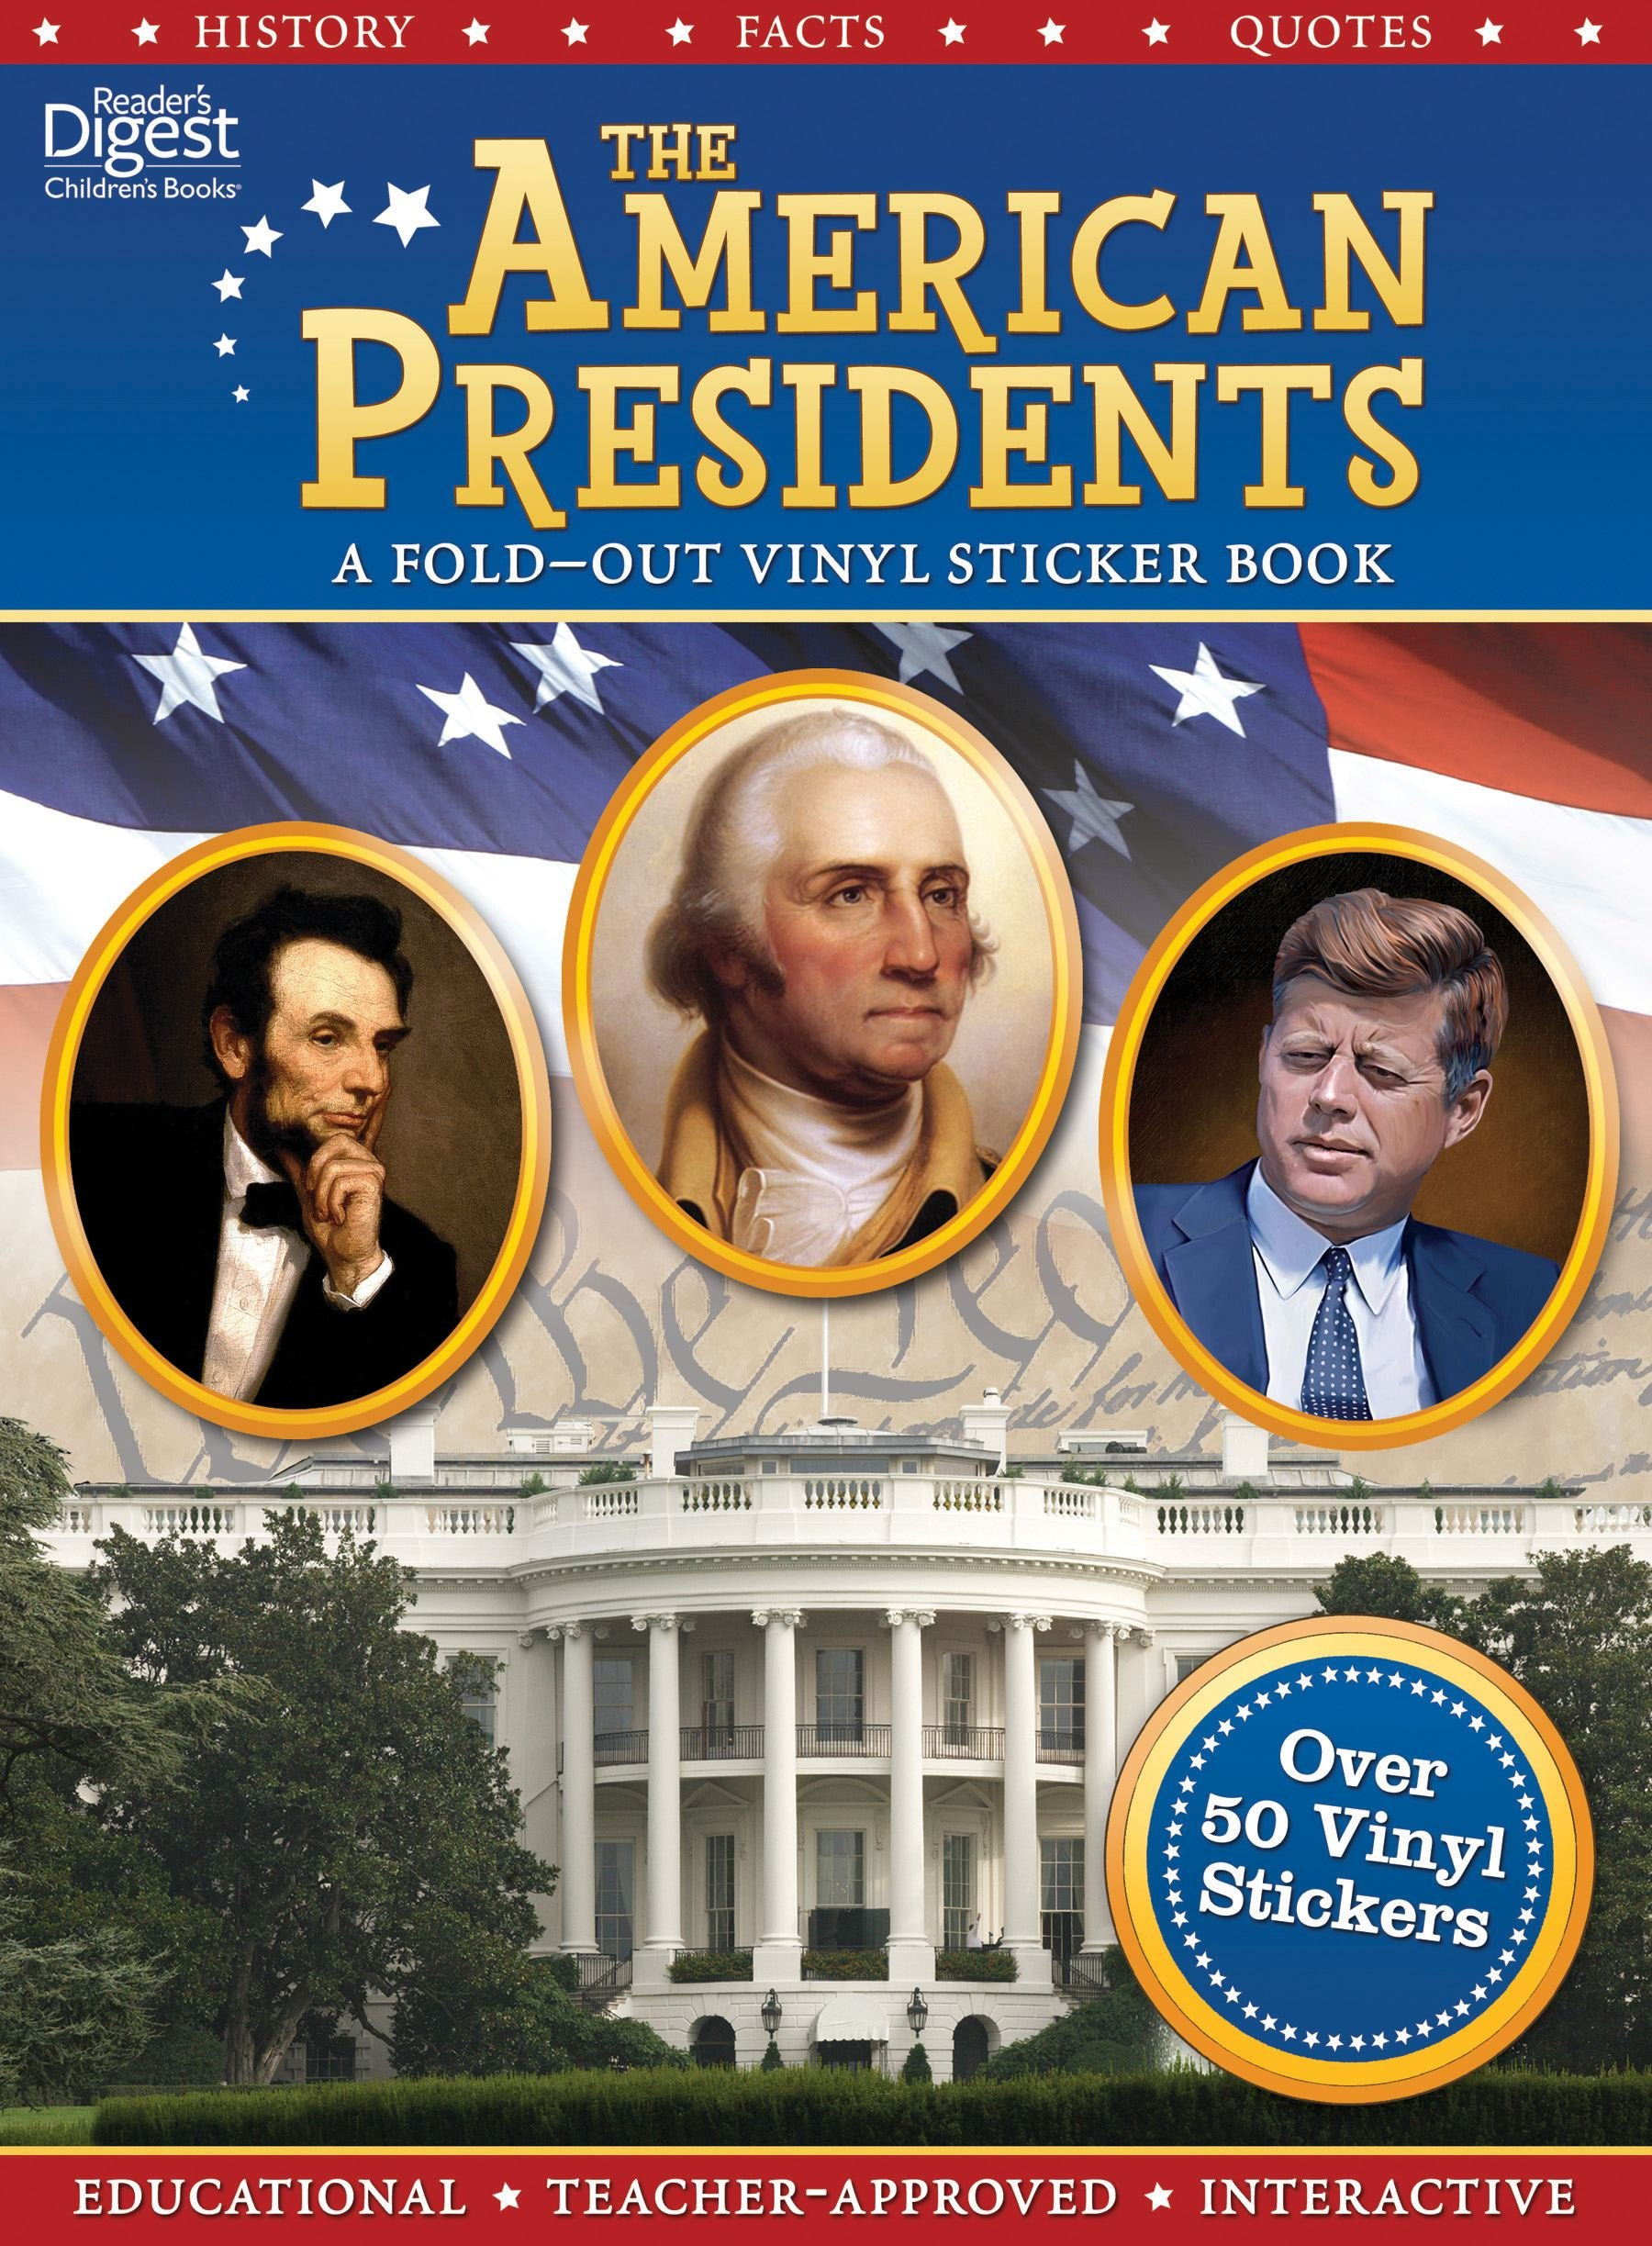 The American Presidents (Fold-out Vinyl Sticker Book)